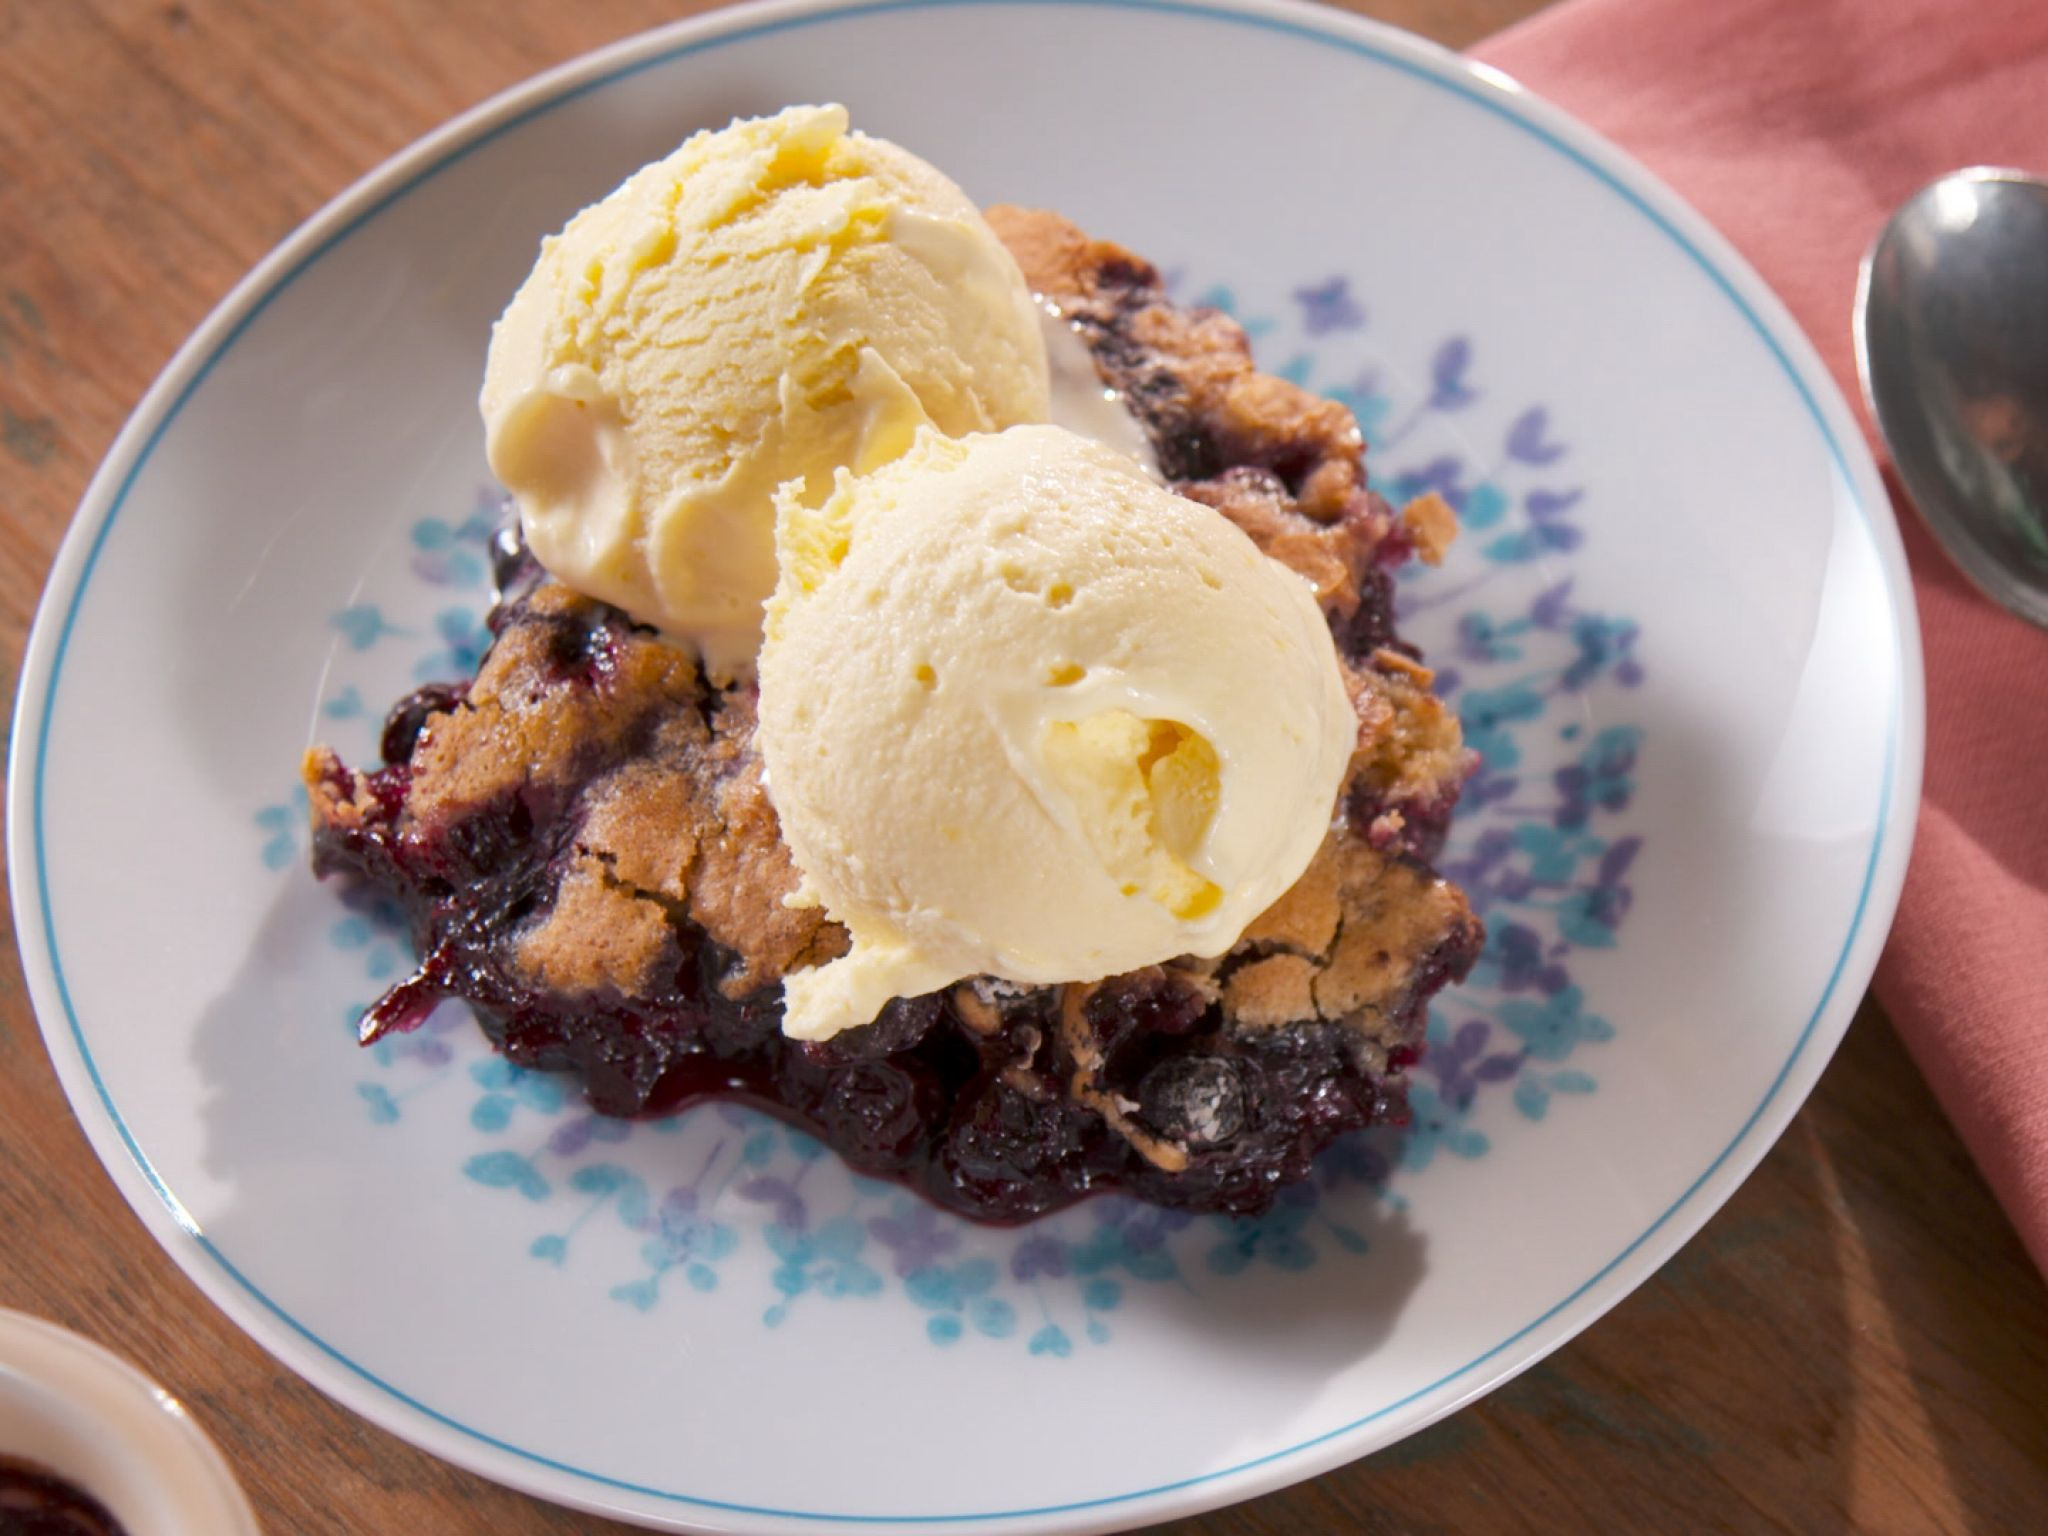 Blueberry Cobbler with Lemon Honey Ice Cream Recipe